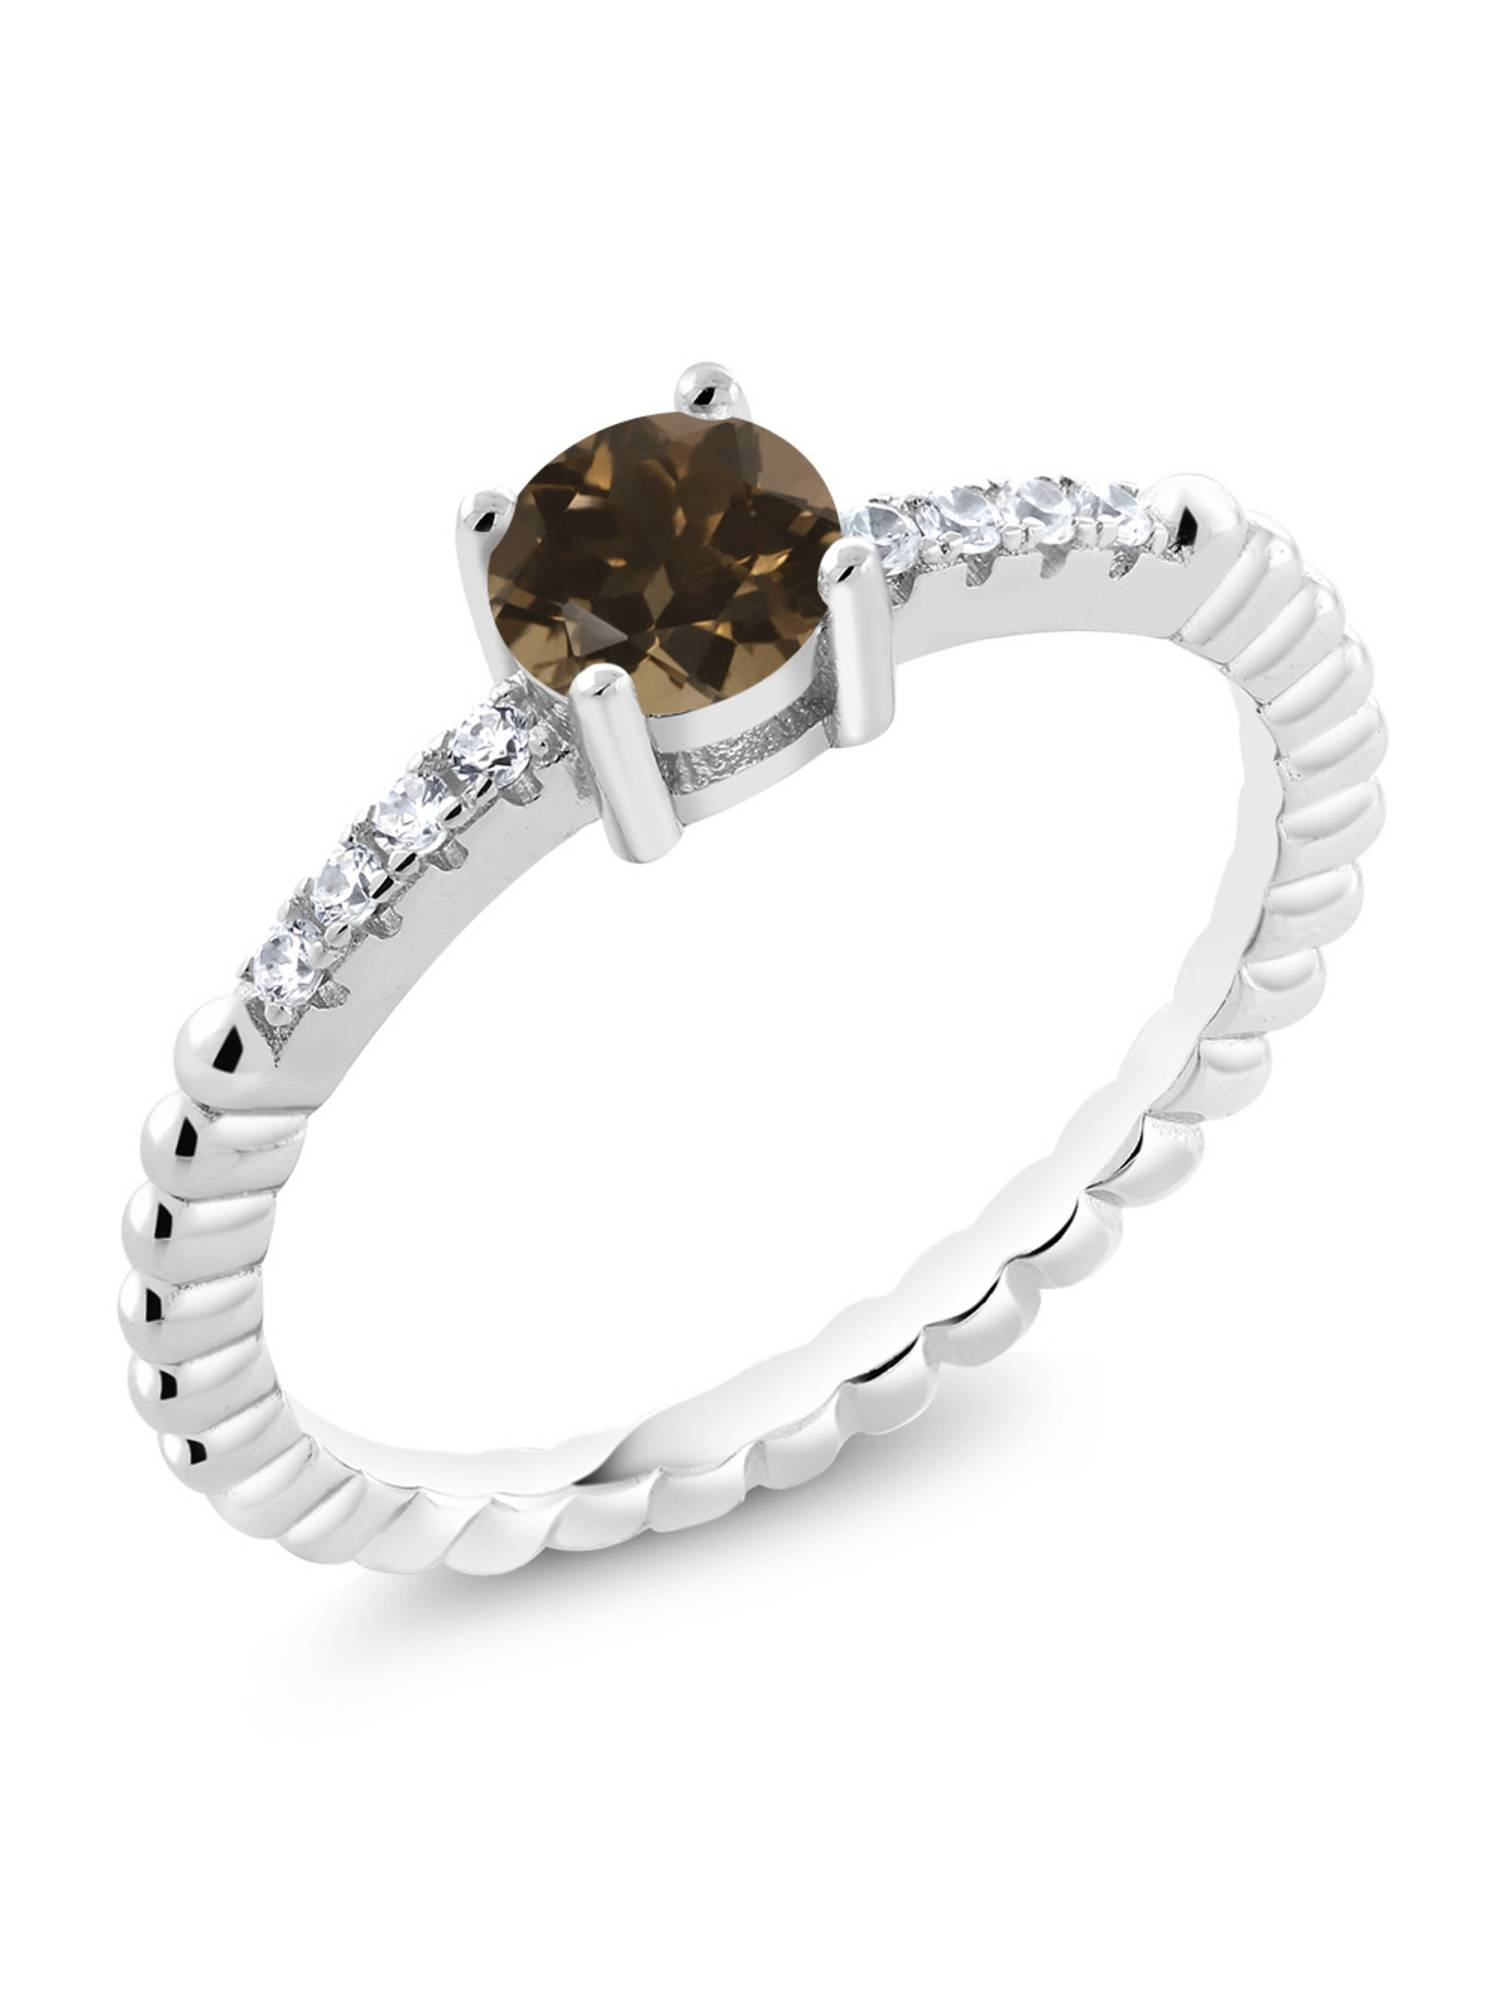 0.54 Ct Round Brown Smoky Quartz 925 Sterling Silver Engagement Ring